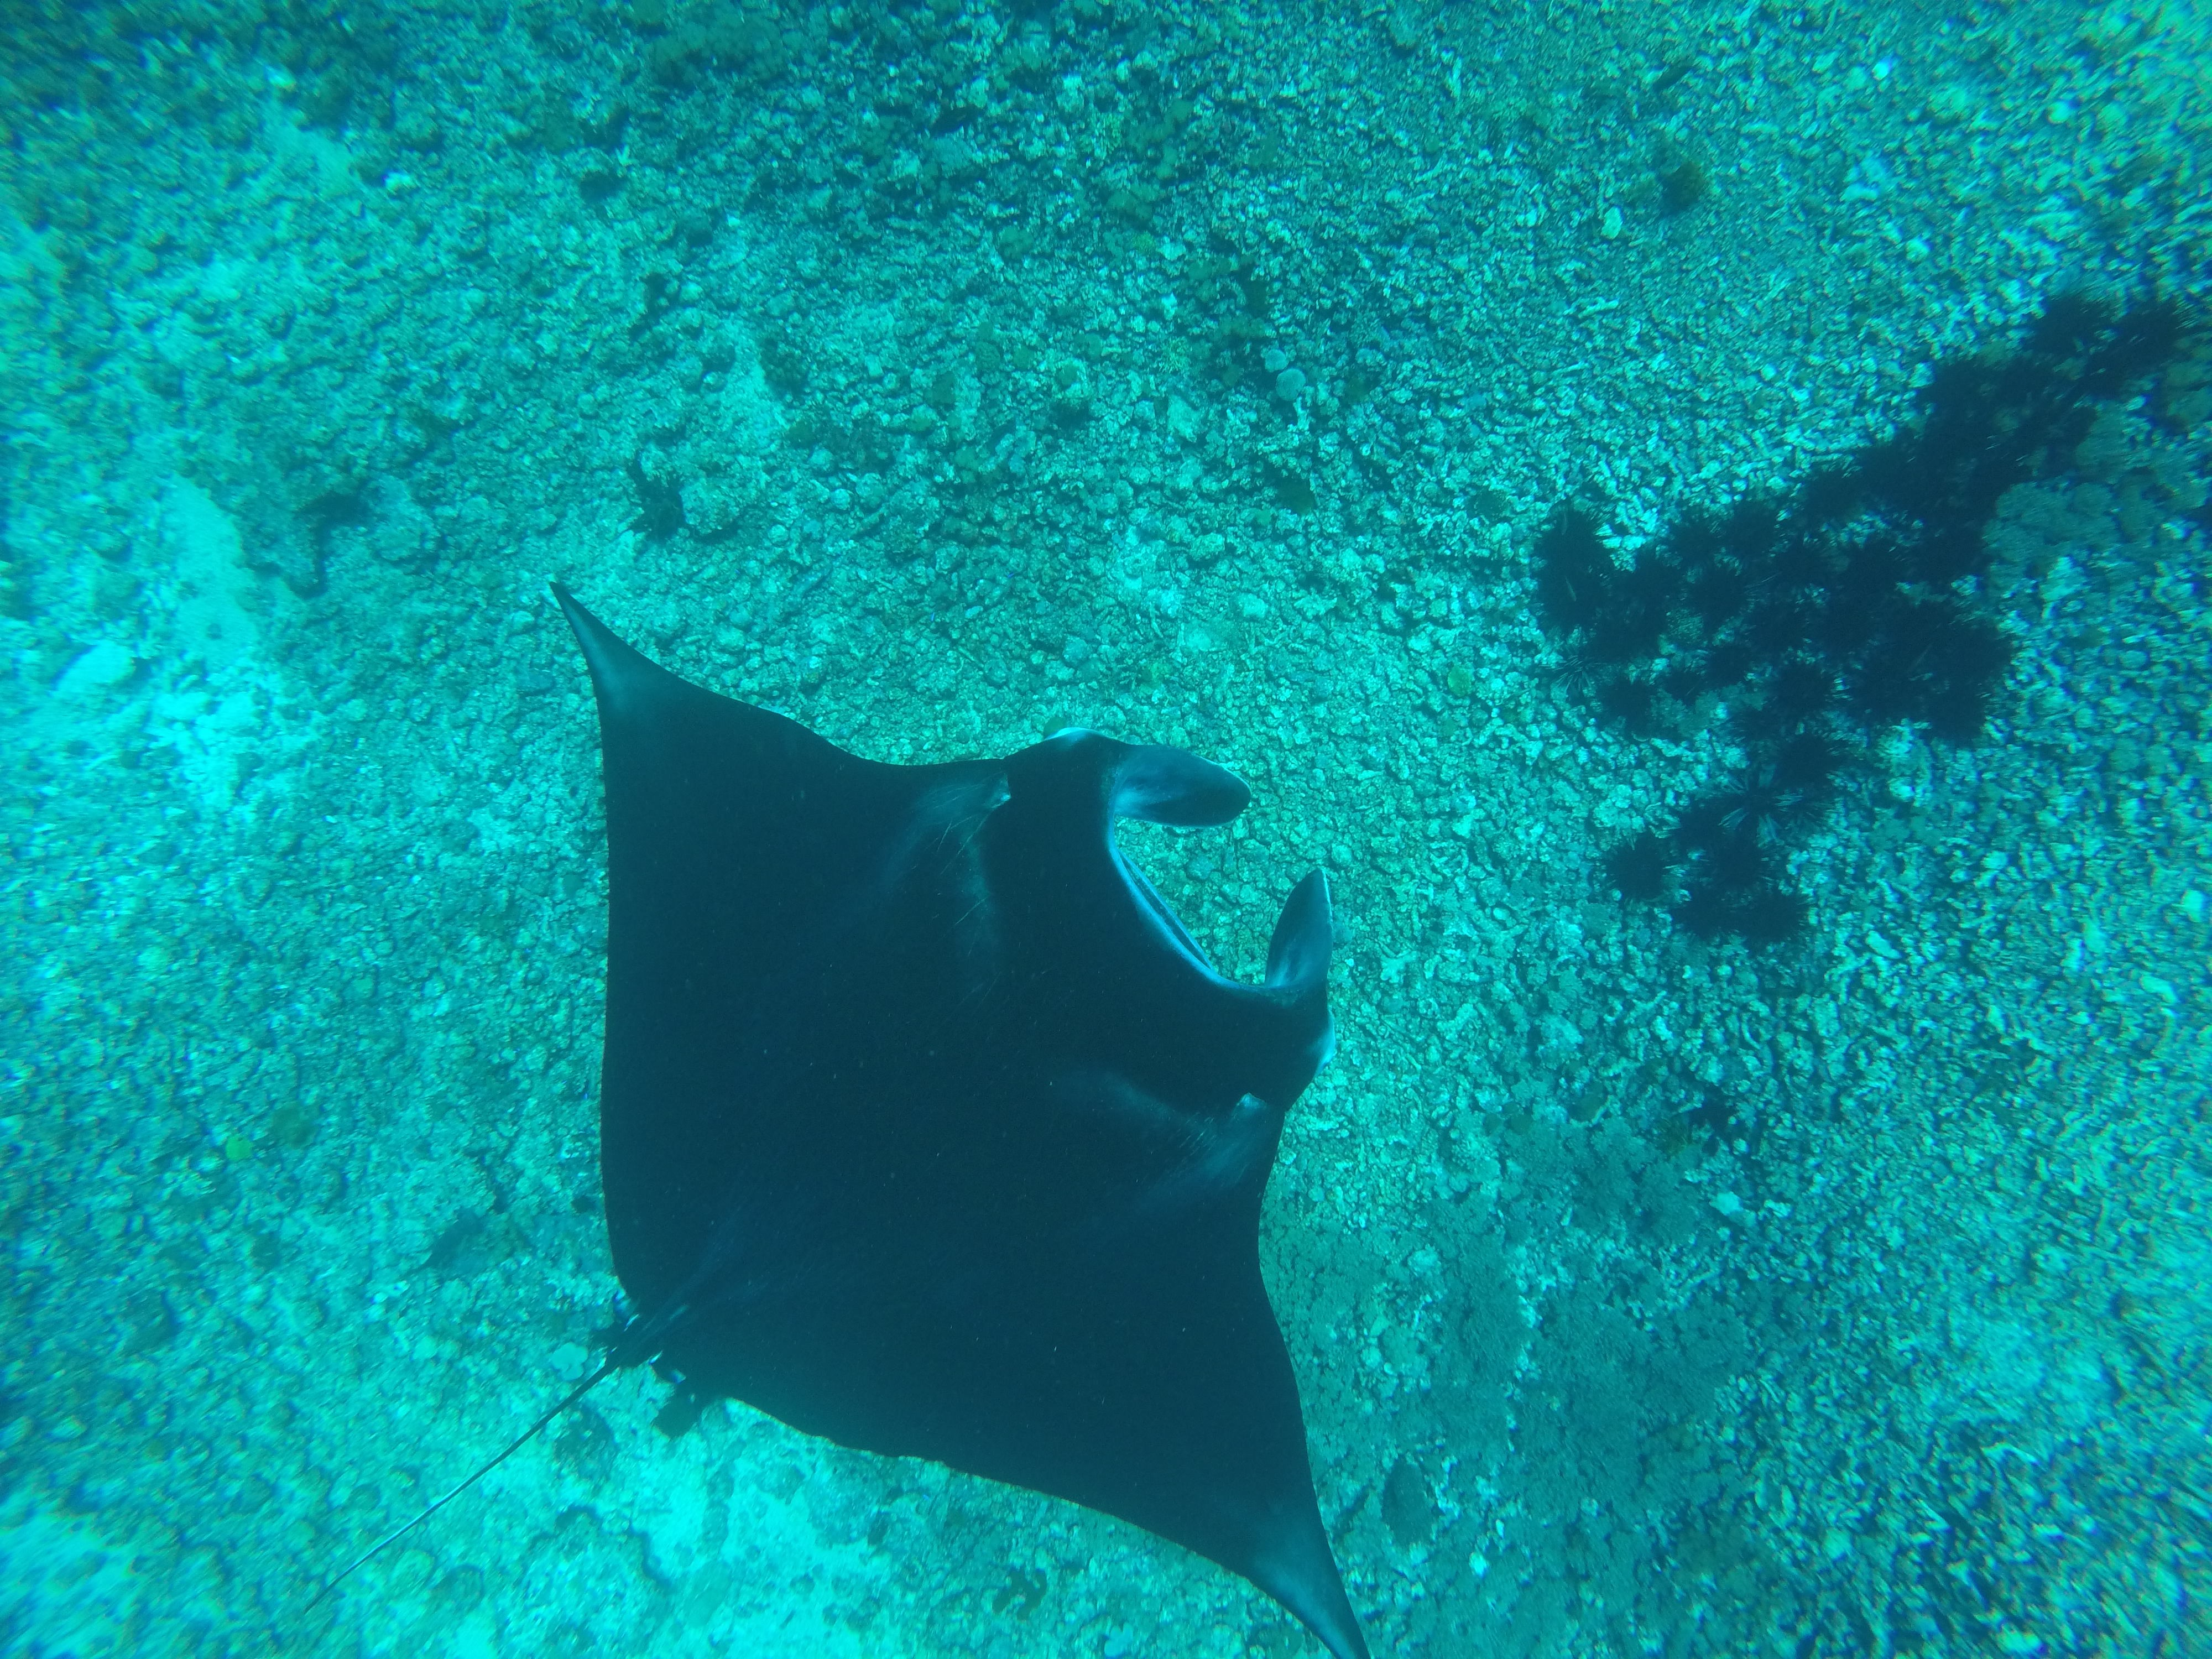 Two Worlds Treasures - another manta ray at Manta Point, Flores, Indonesia.